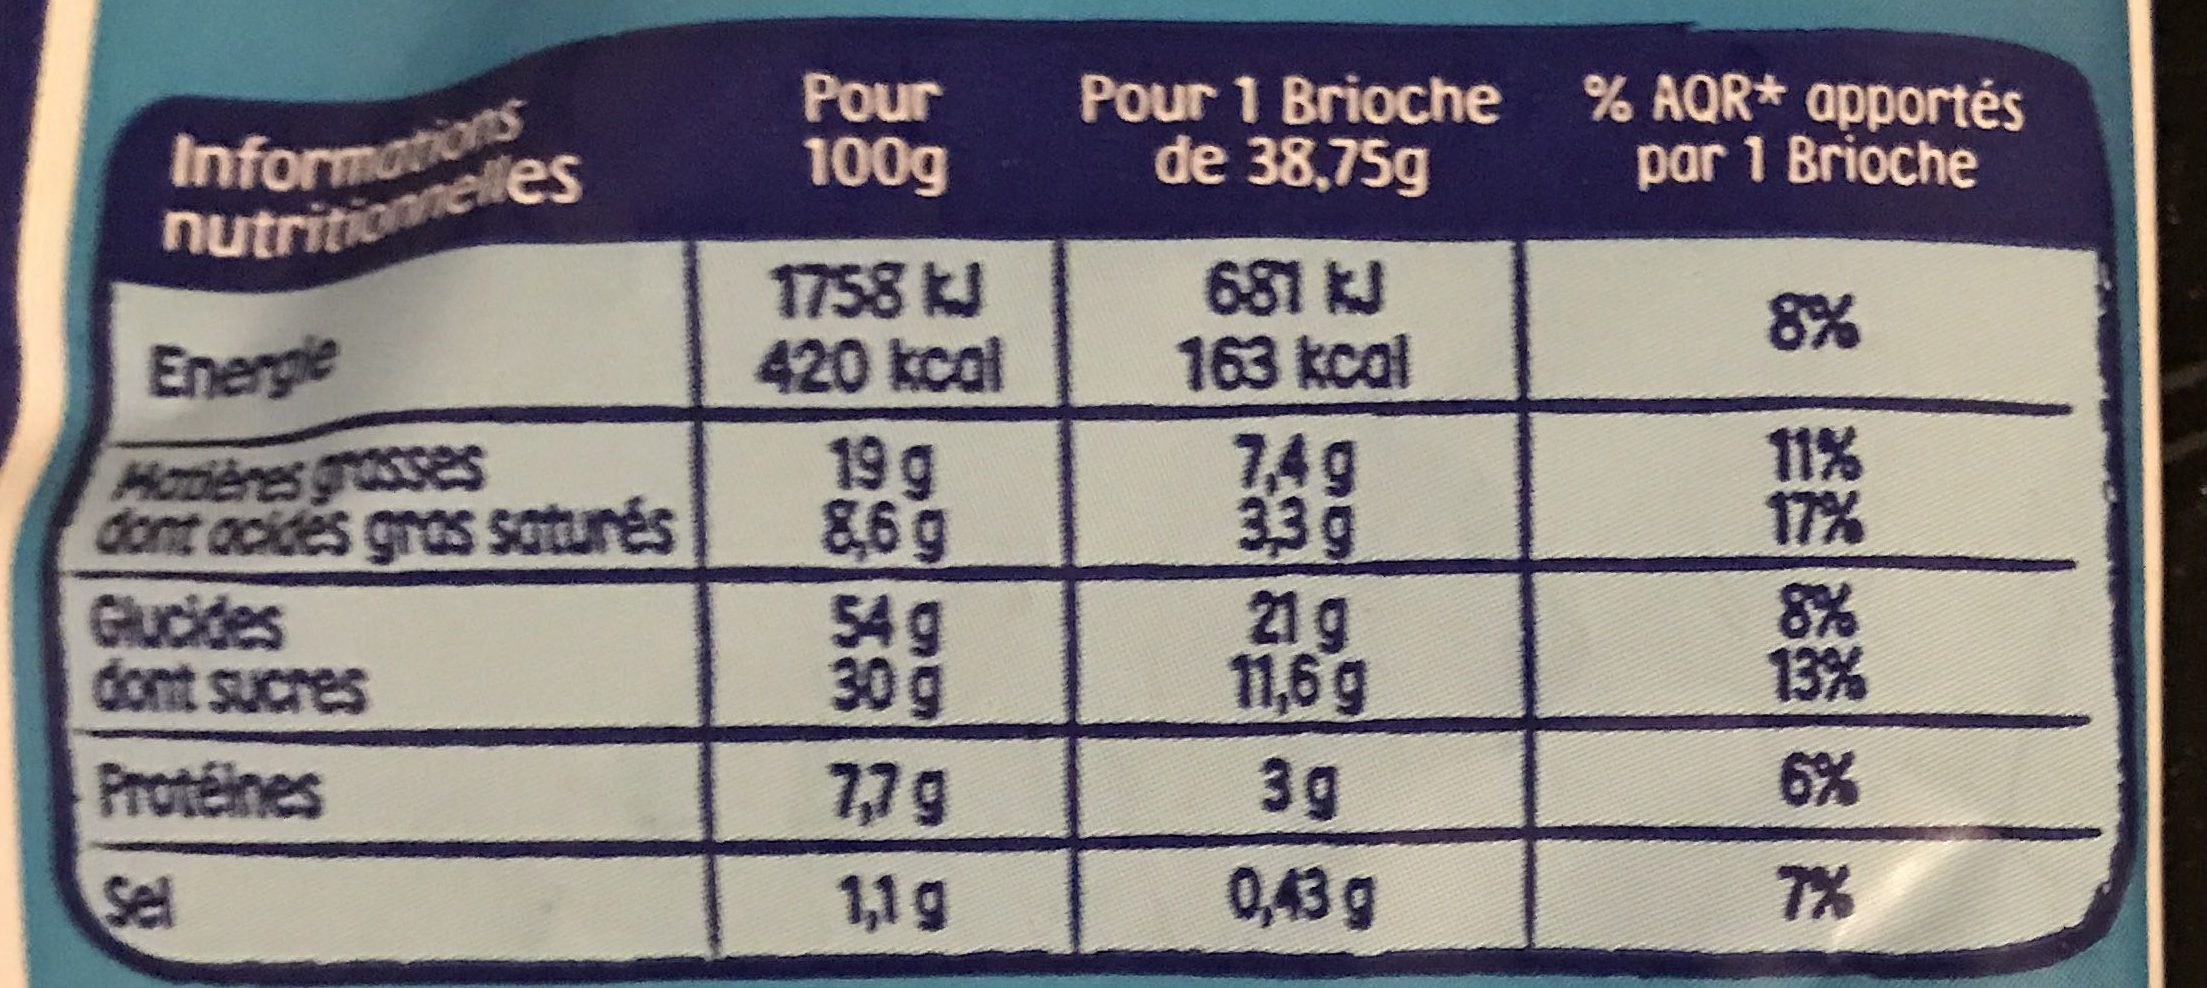 Pitch choco barre lait x 8 + 2 gratuits - Nutrition facts - fr